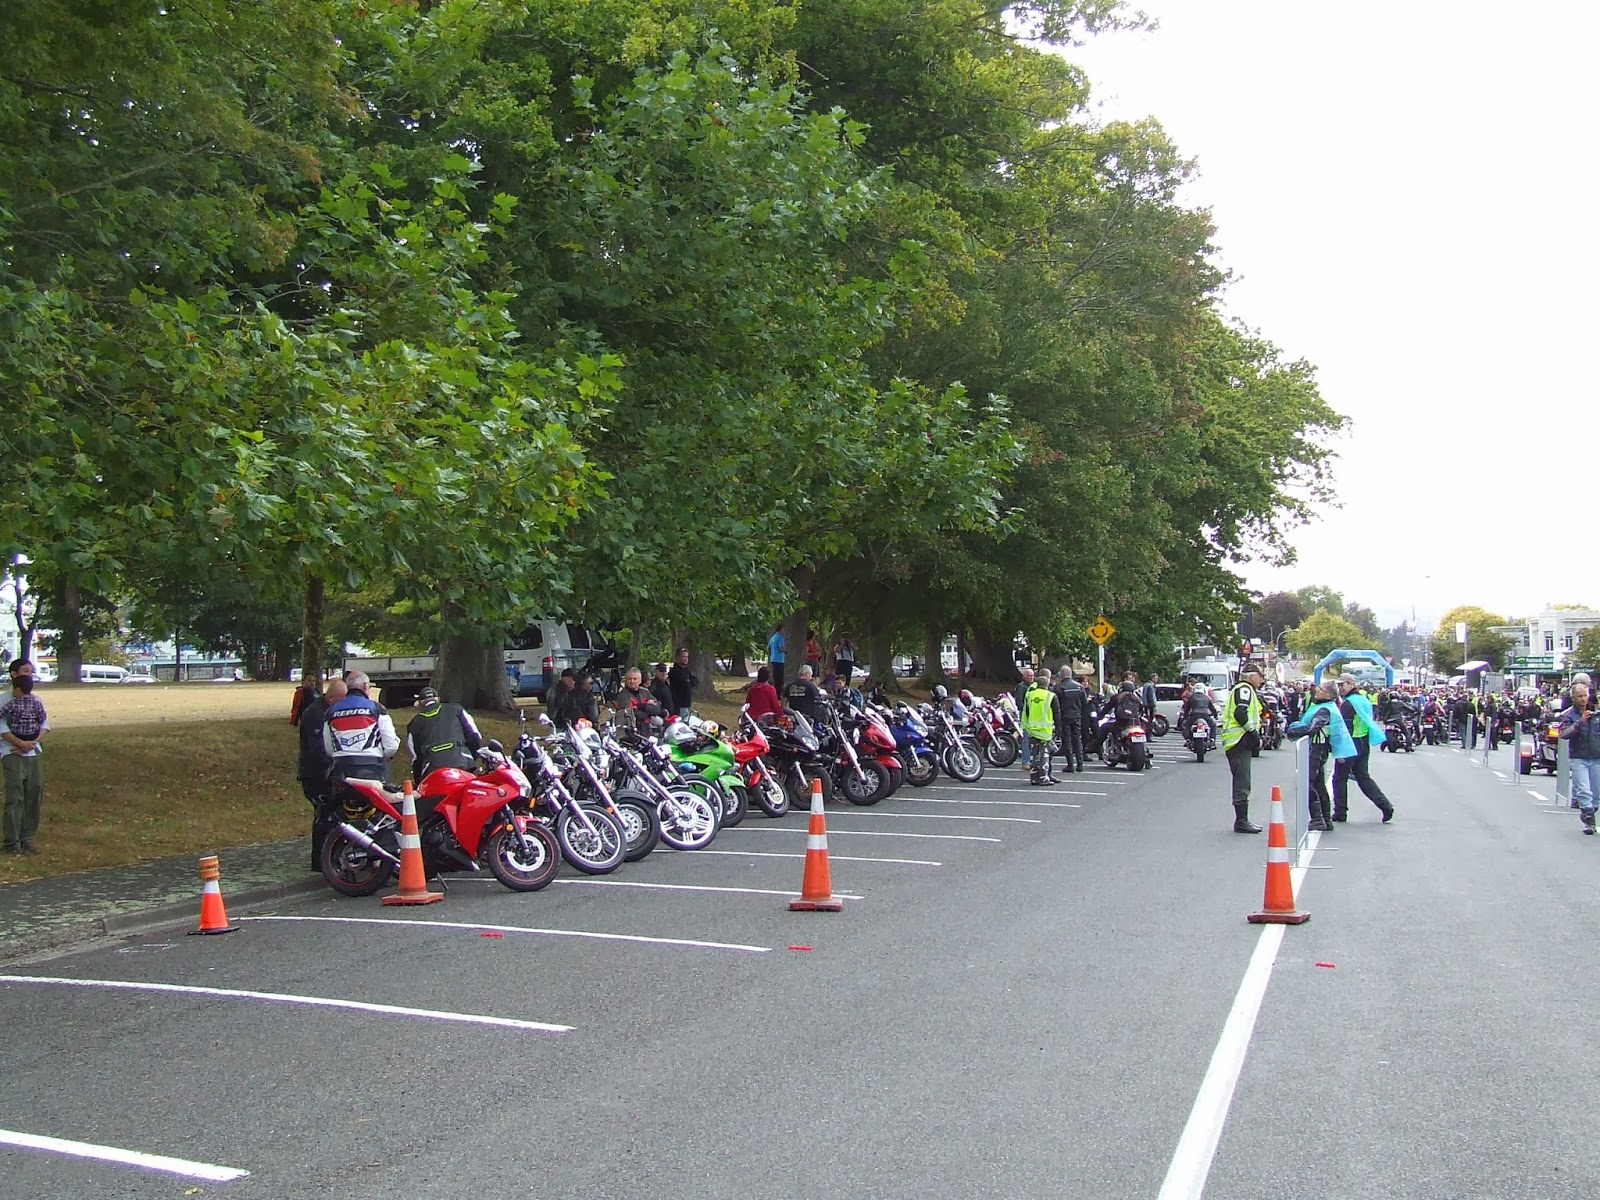 Toy Run Ulysses Waikato Chapter Cambridge - Hamilton NZ DSCF2884